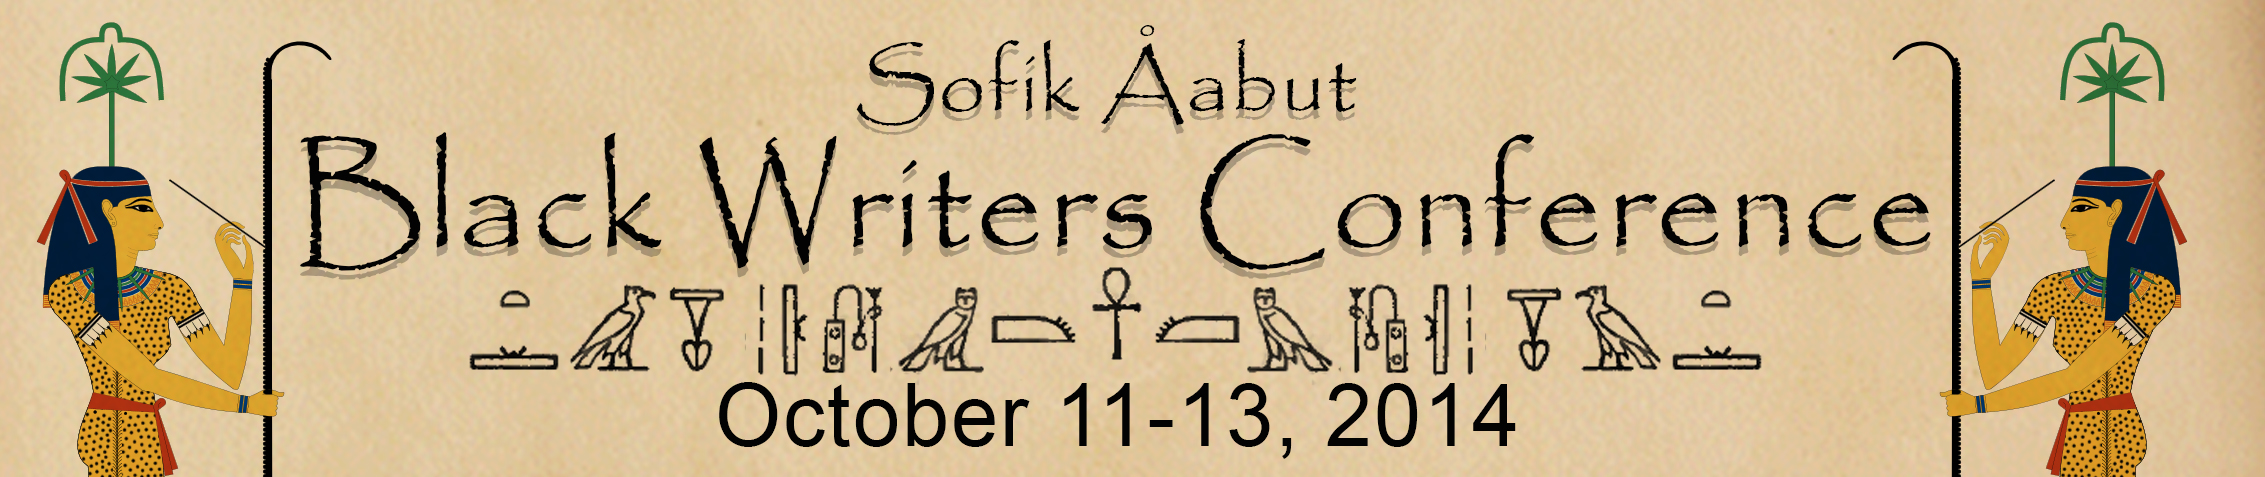 Sofik Aabut Black Writers Conference,